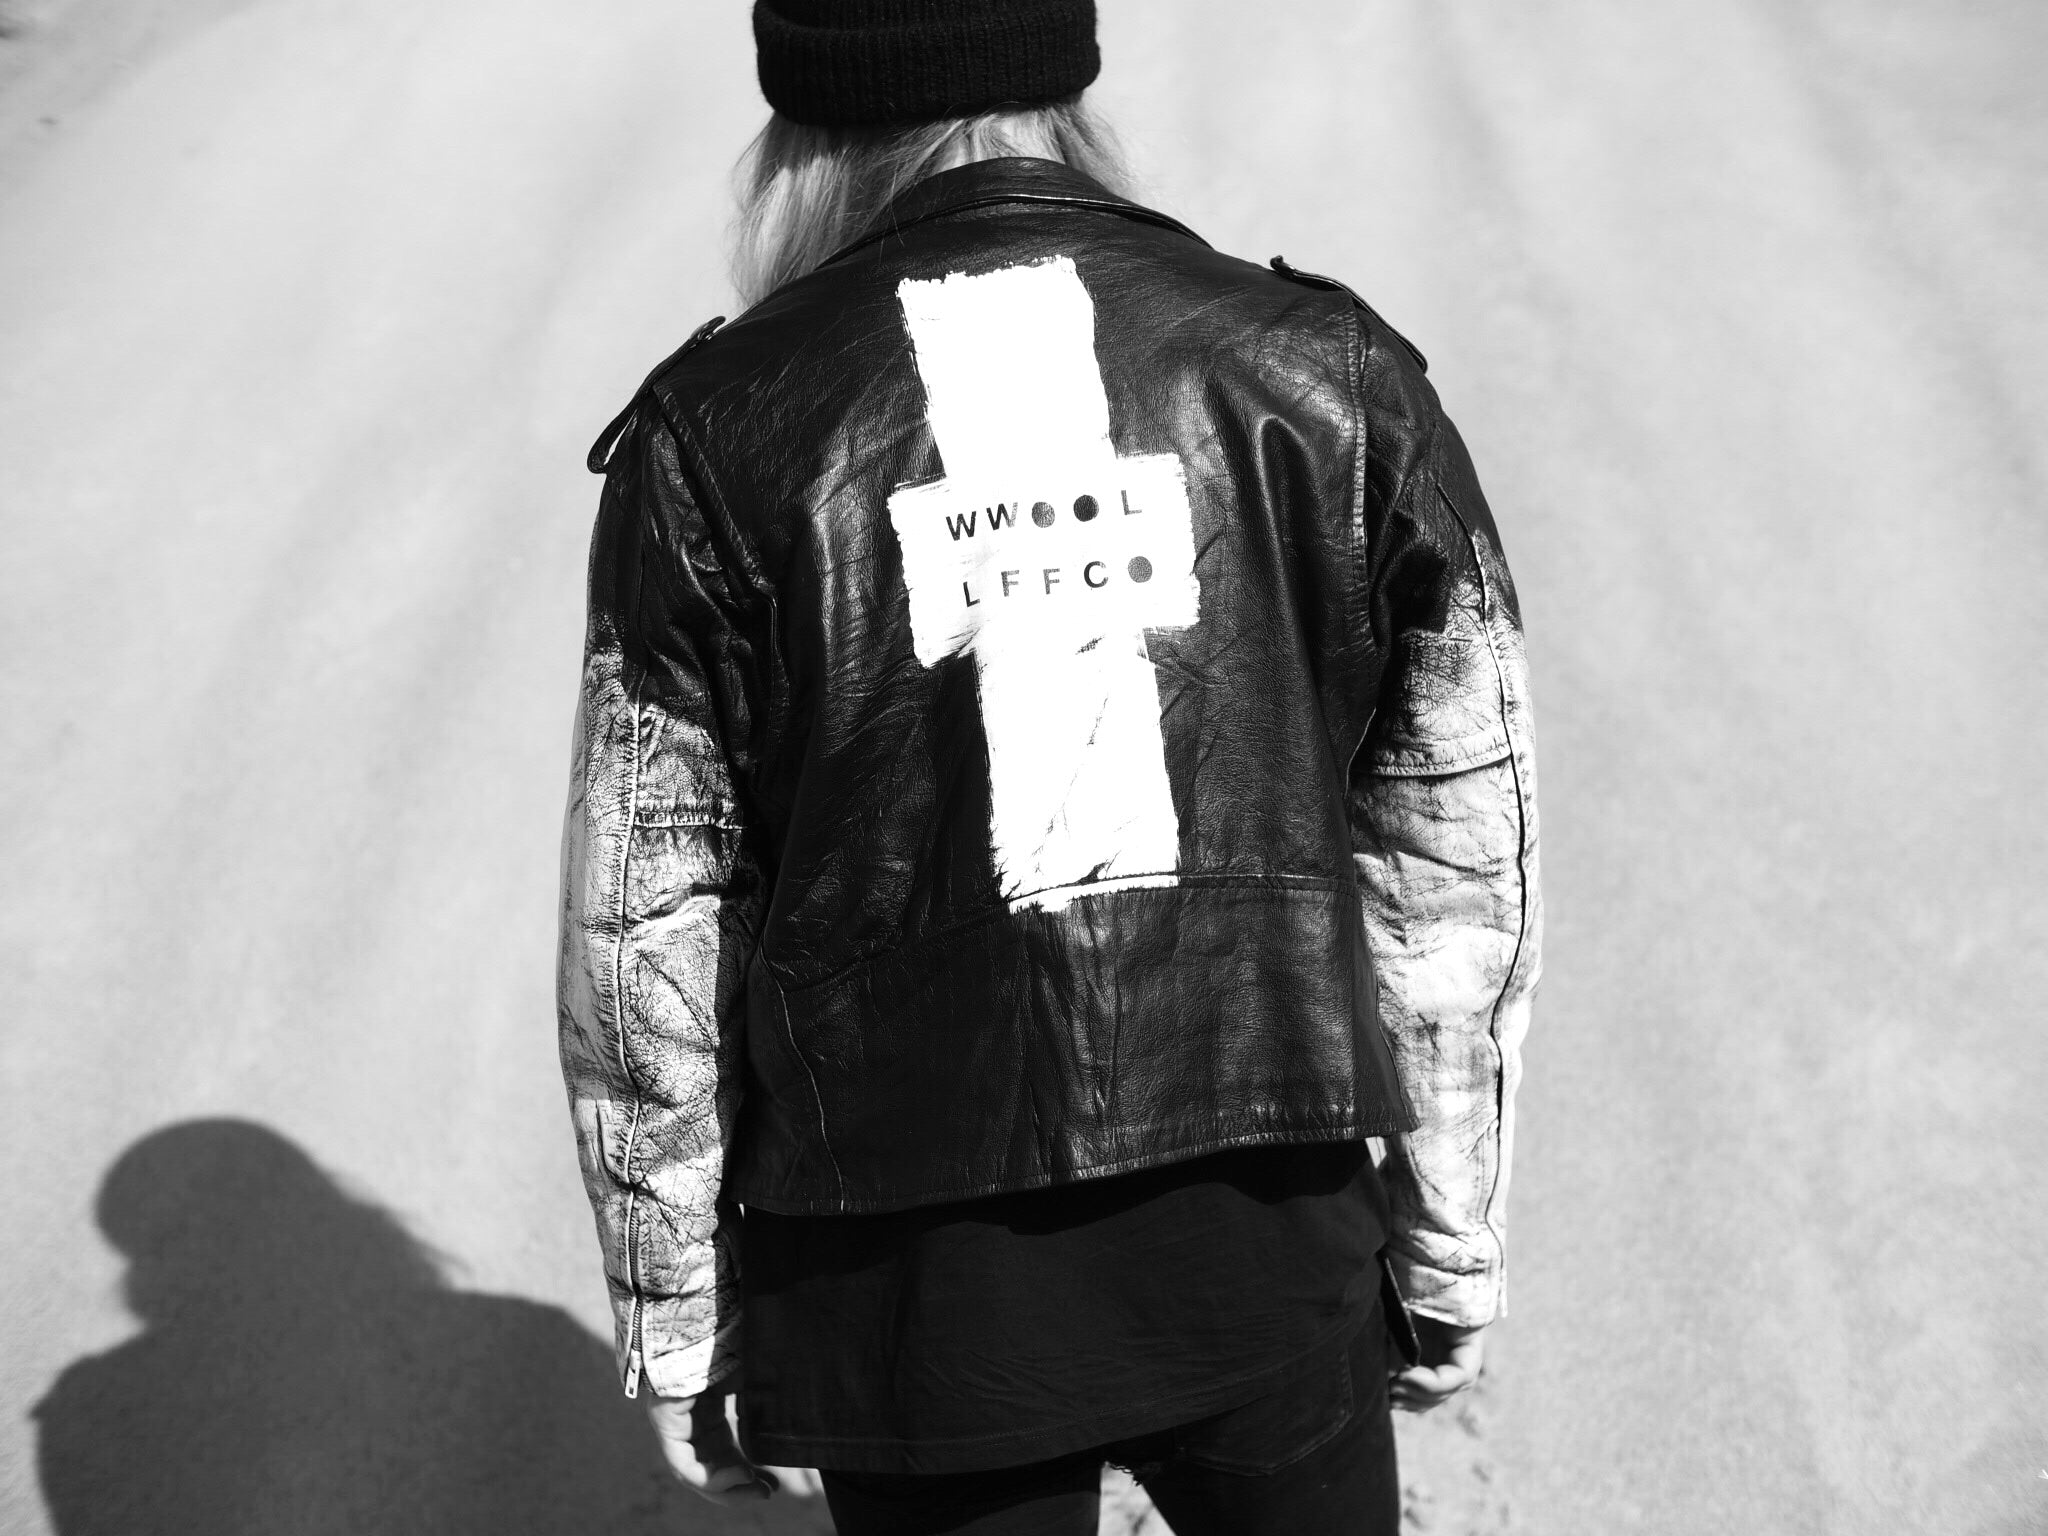 WWOOLLFF CO. Biker Jackets | Model Nº 36